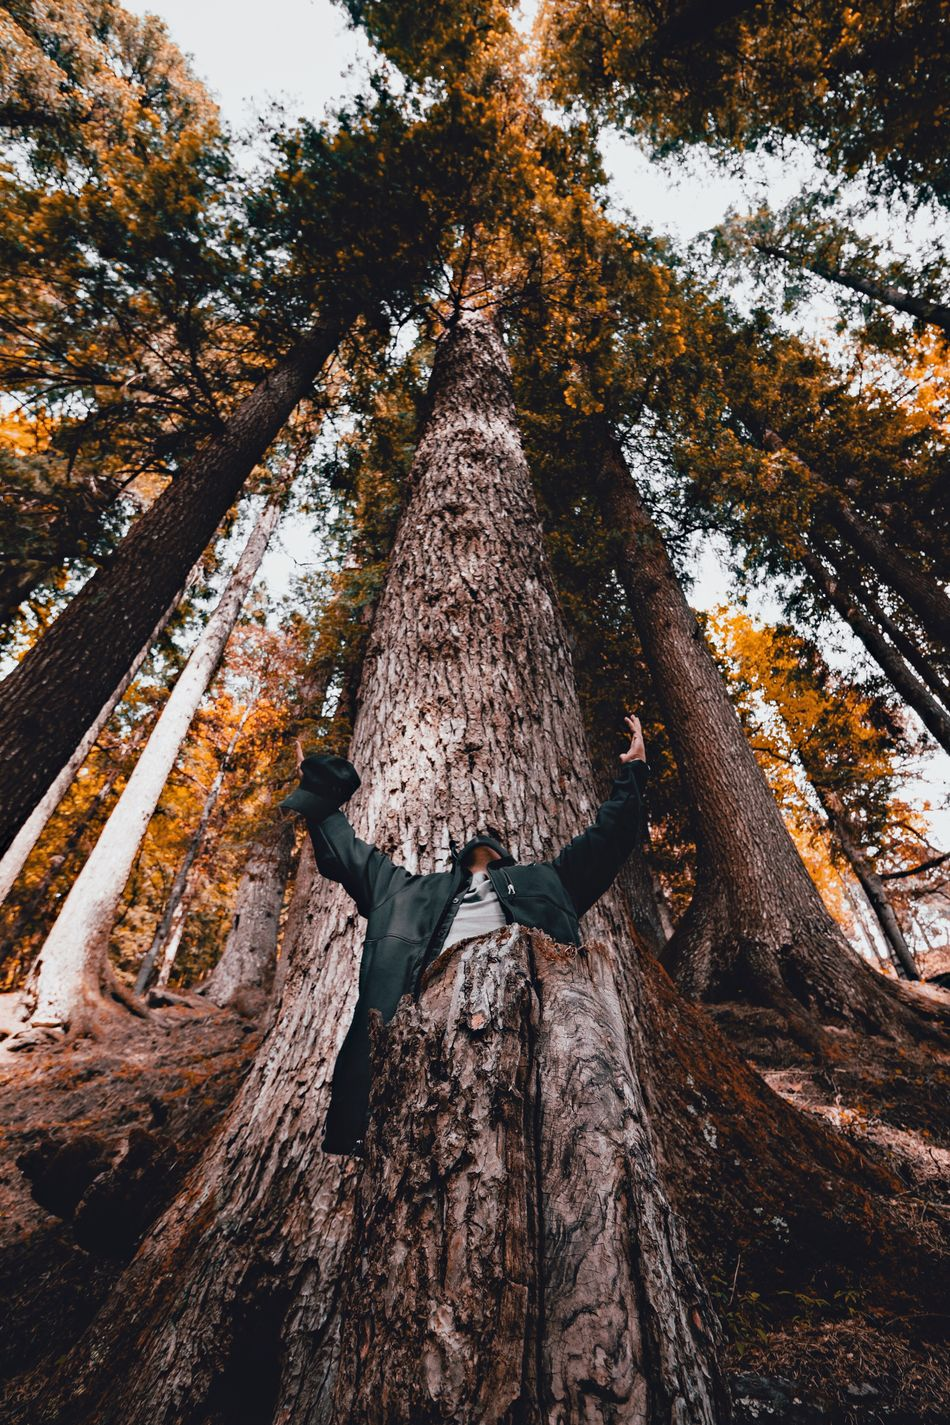 Praise the Lord People And Places Into The Woods Into The Wild Forest Tree Tree Trunk Low Angle View Wood - Material Nature Non-urban Scene WoodLand Adventure Outdoors Himalayas Lookingup Eyeem Market EyeEmBestPics EyeEm Best Shots EyeEm Tall - High Praising The Lord Tranquility Bark Tranquil Scene Scenics